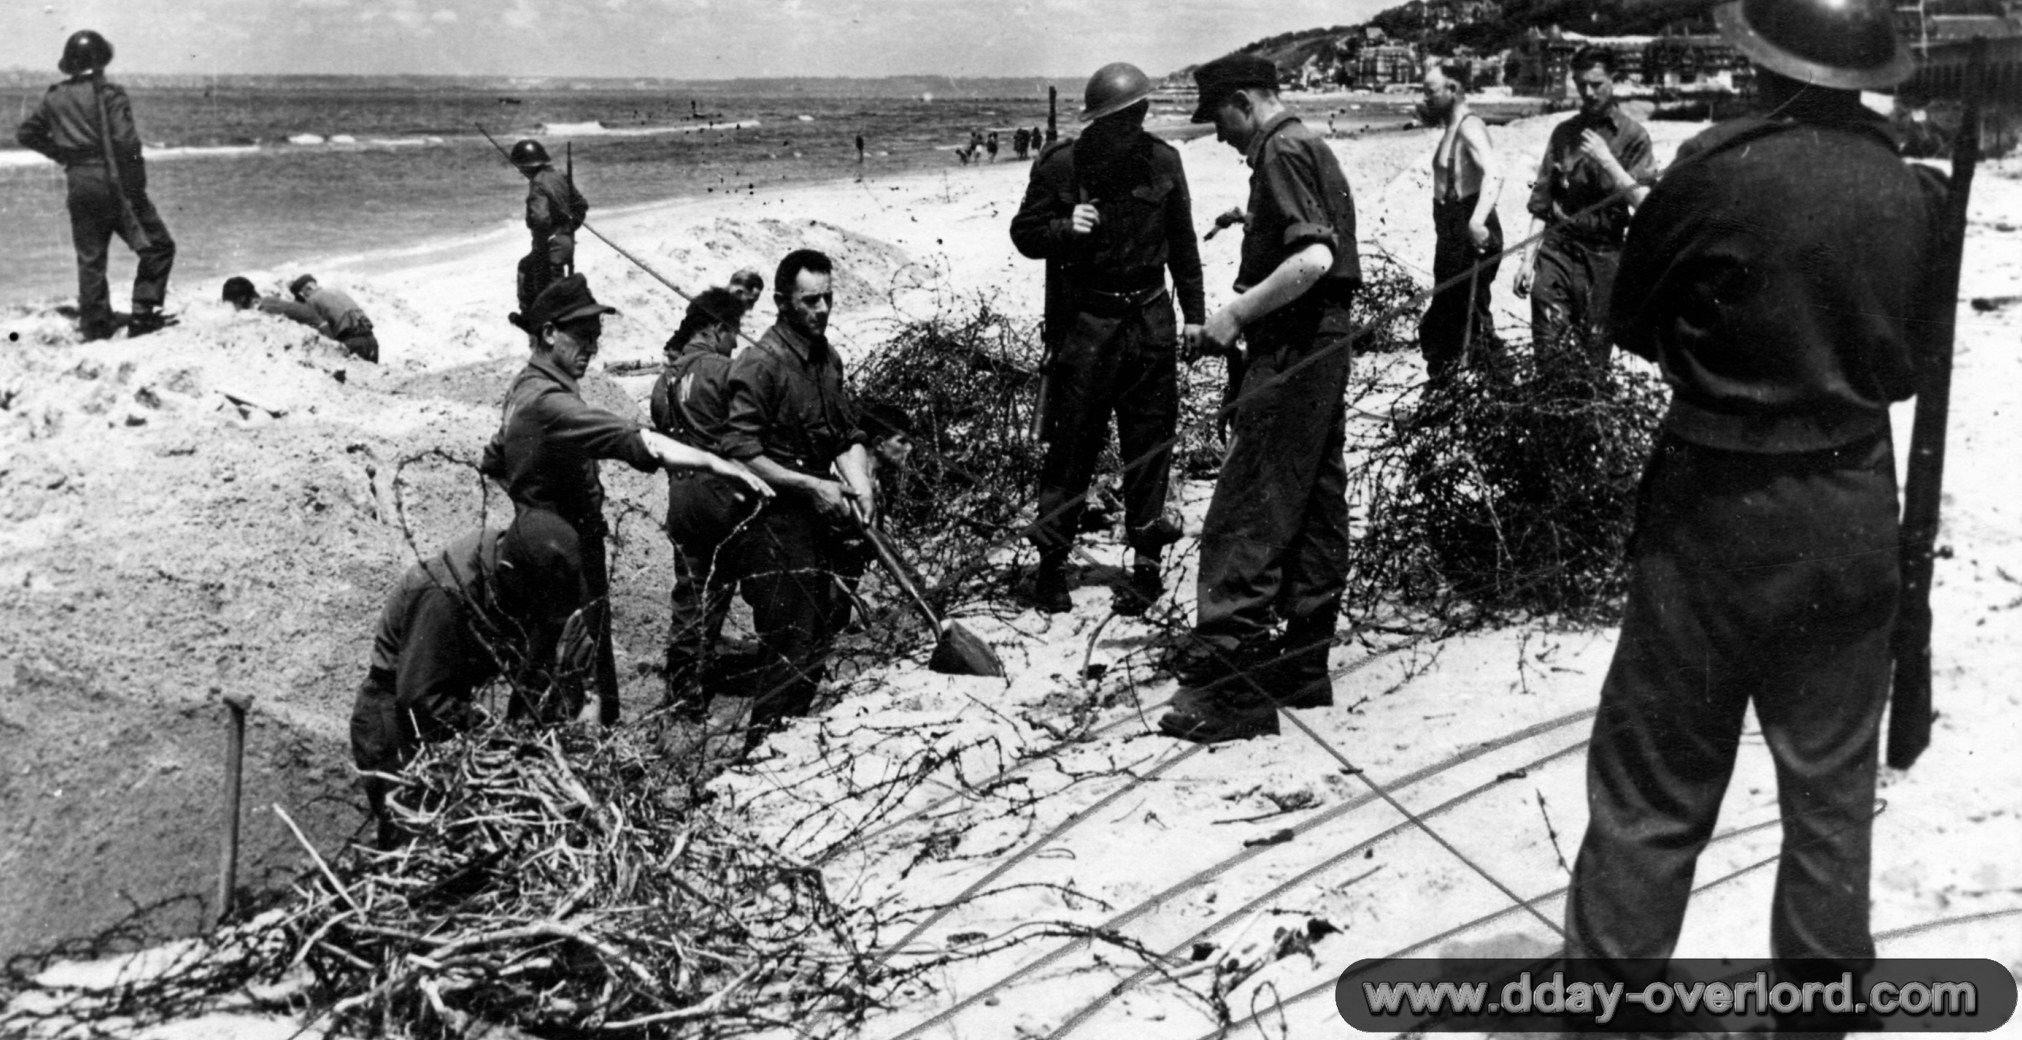 Deauville in 1944 - Calvados - Battle of Normandy